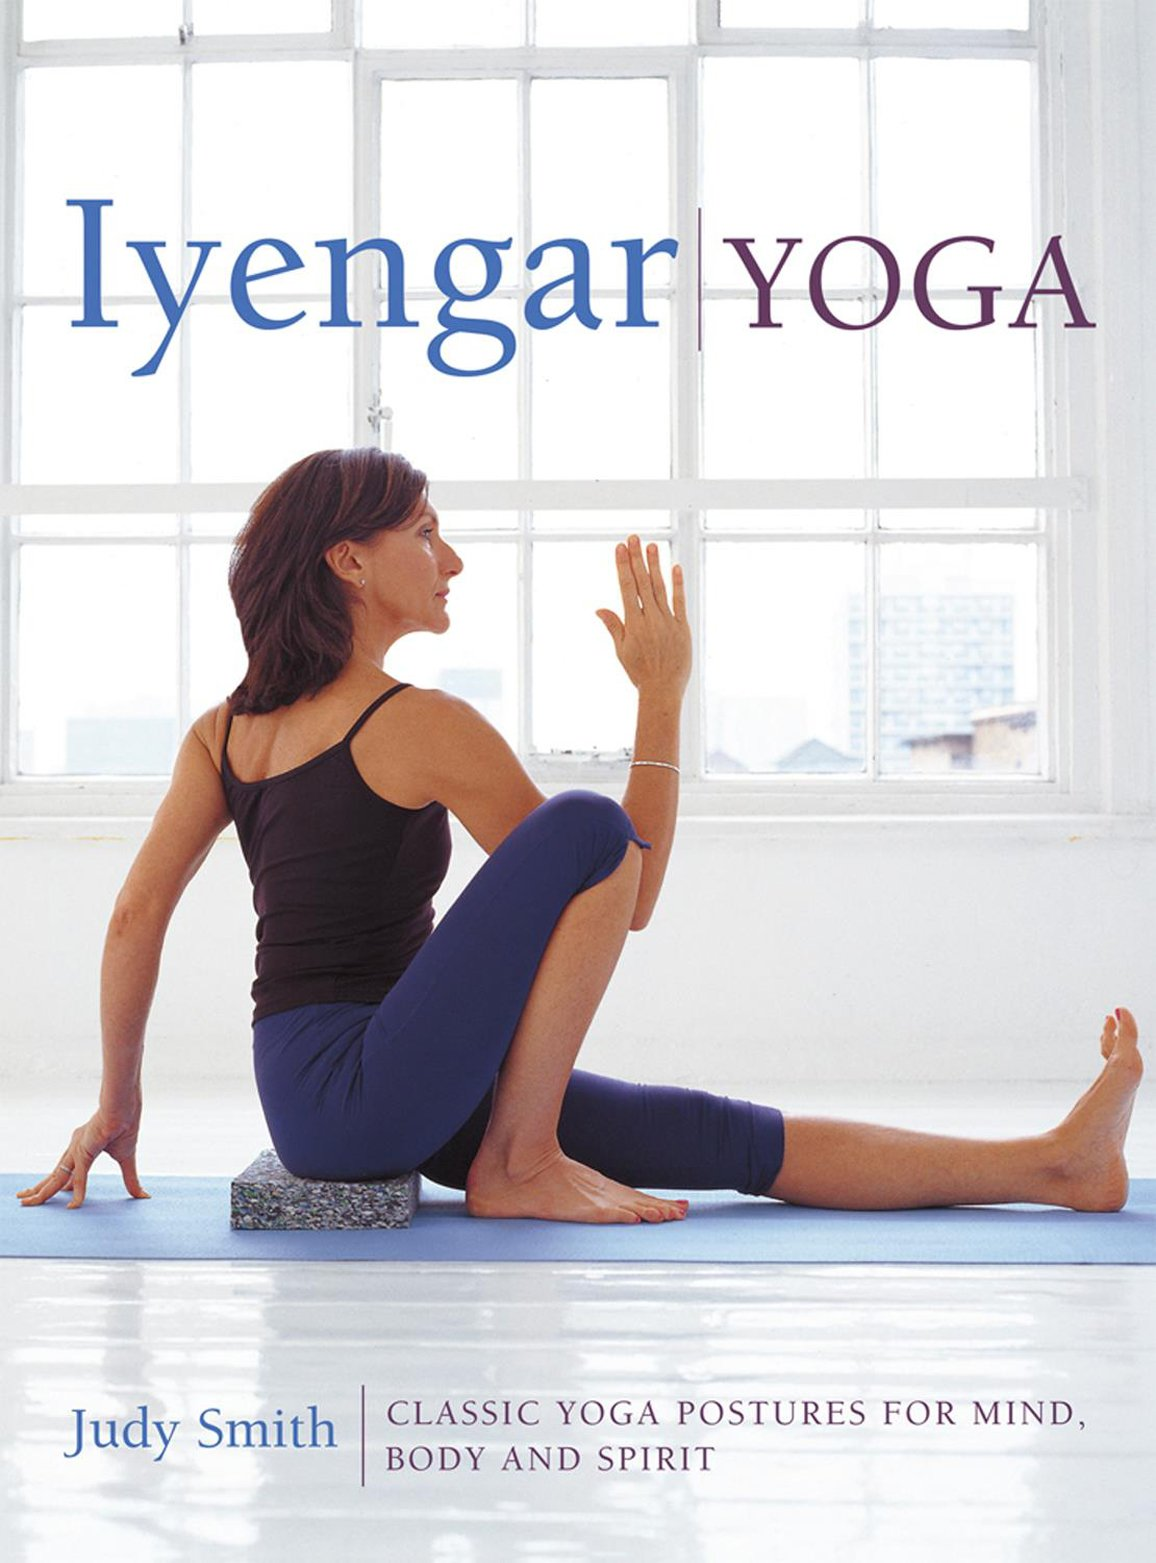 Iyengar Yoga Classic Yoga Postures For Mind Body And Spirit Buy Online In Bermuda Smith Judy Products In Bermuda See Prices Reviews And Free Delivery Over Bd 70 Desertcart